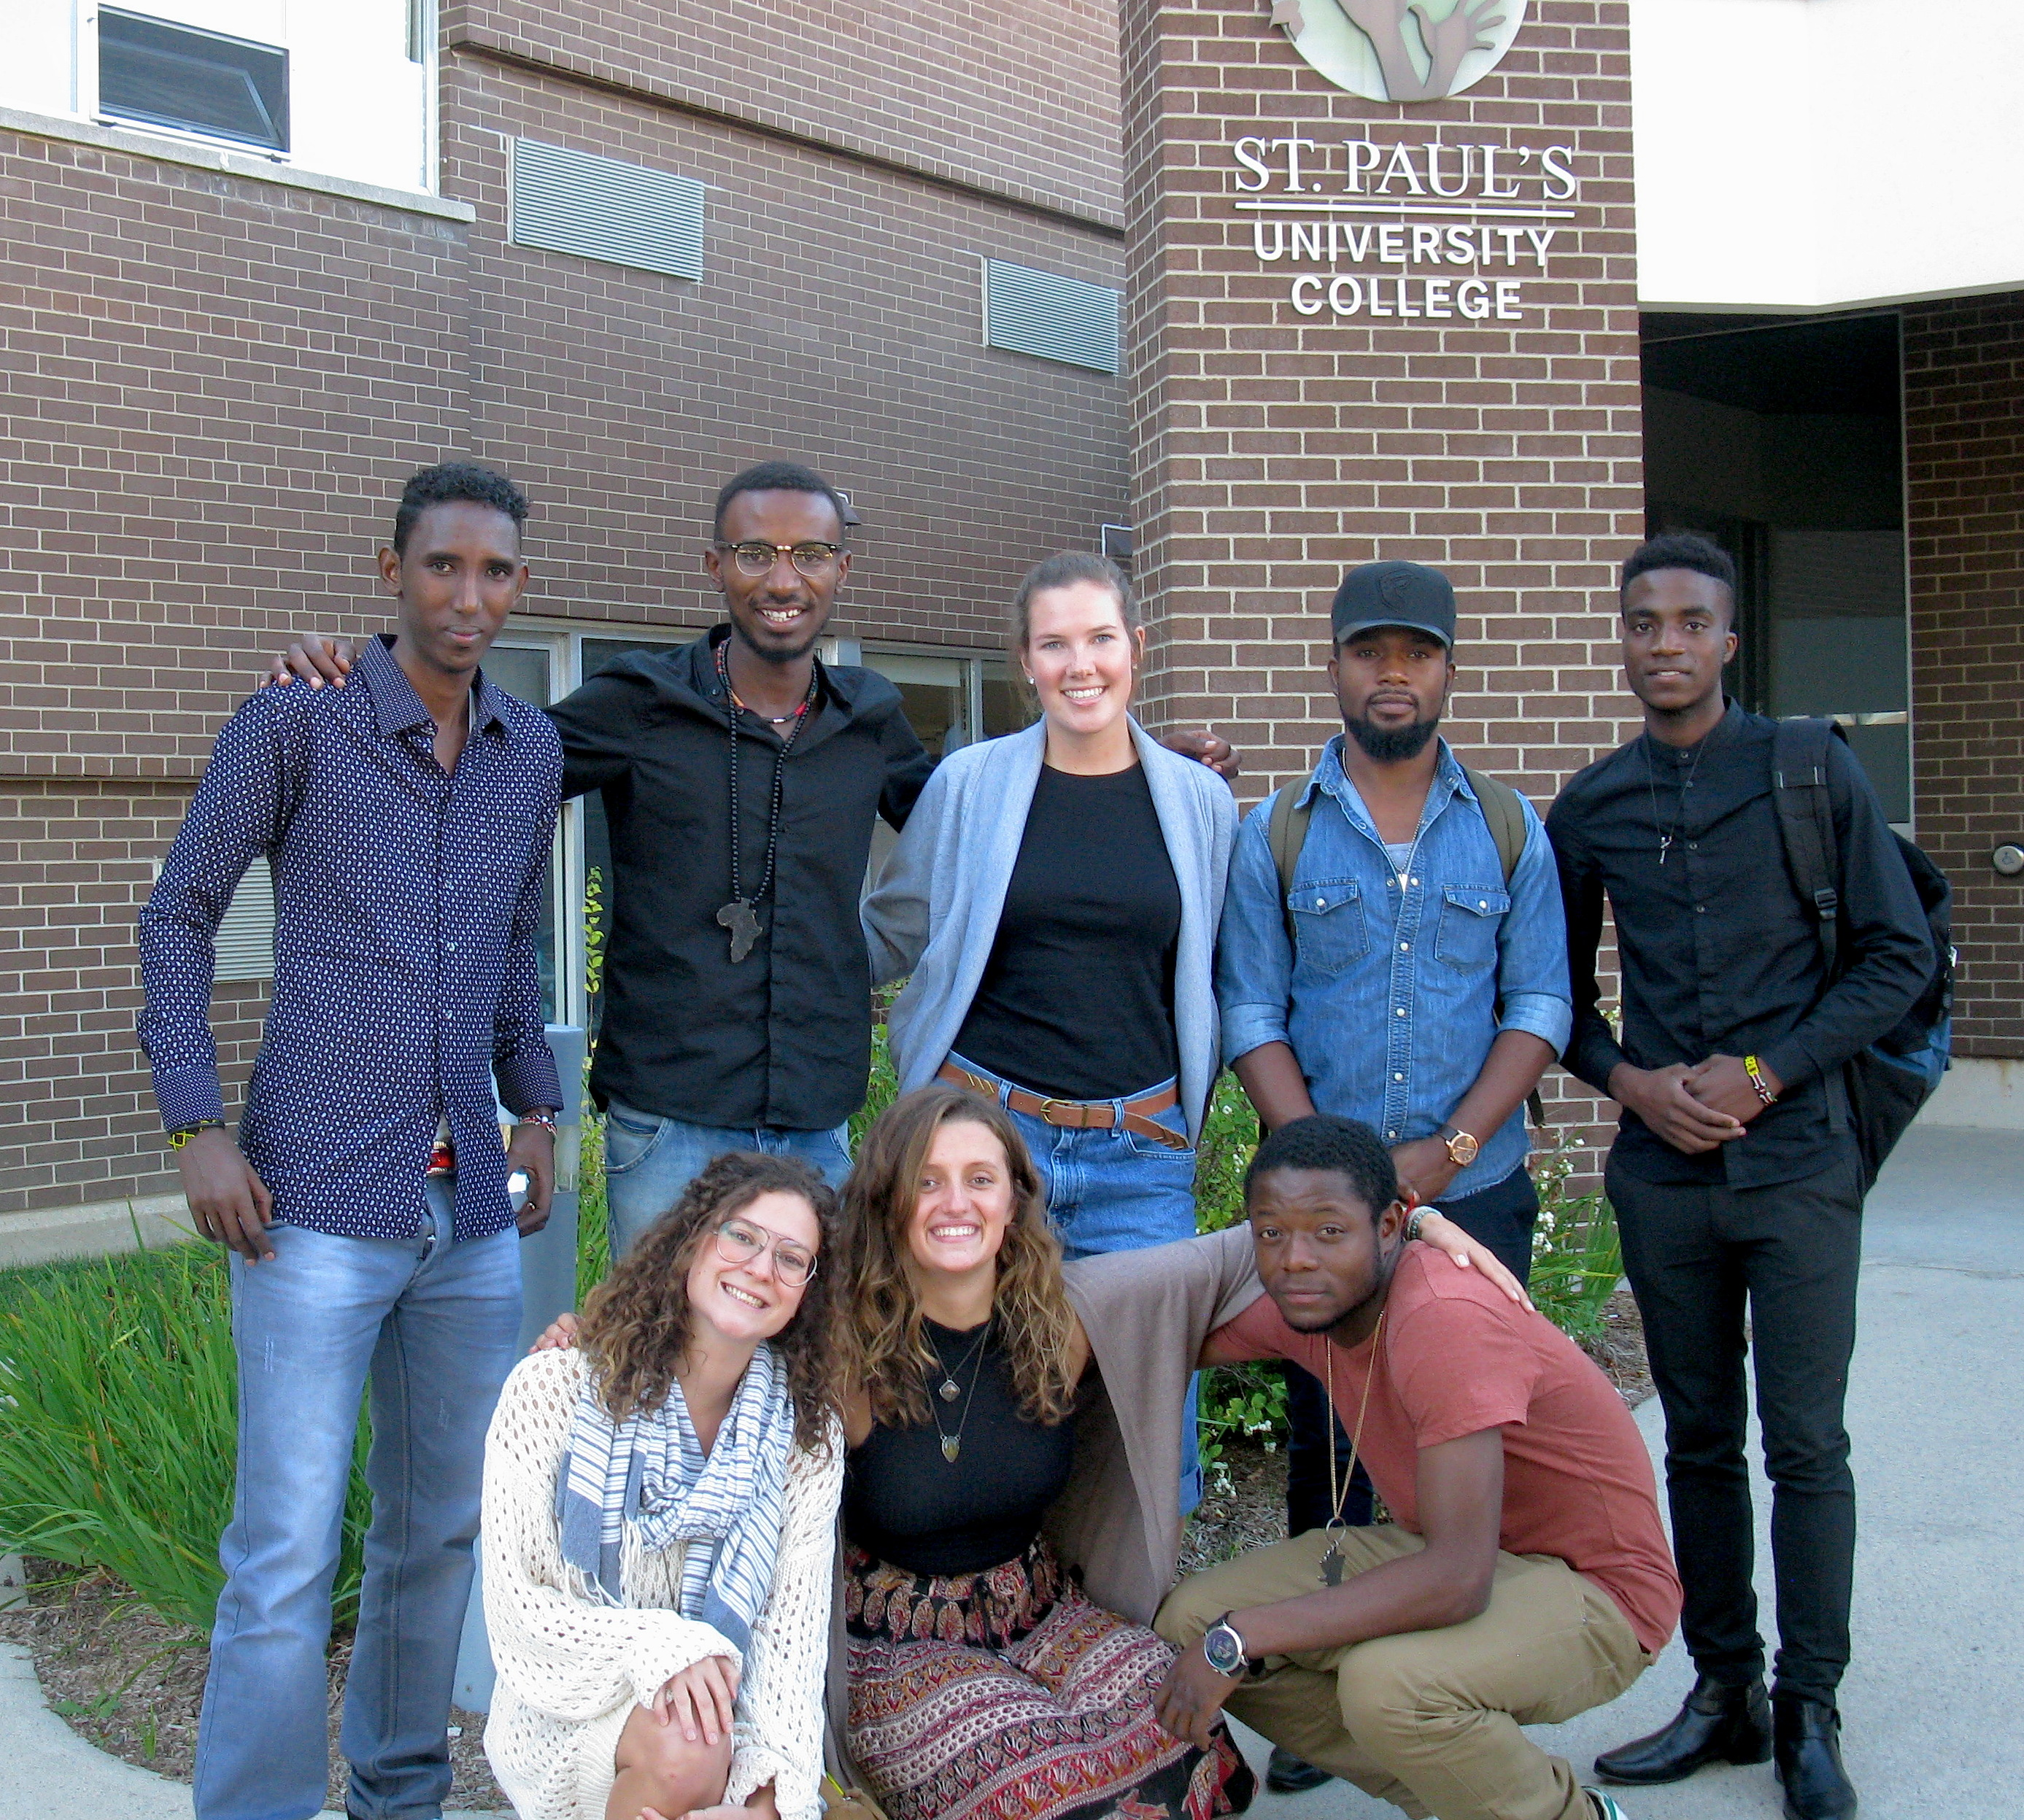 Members of the local WUSC committee and the 2 new students